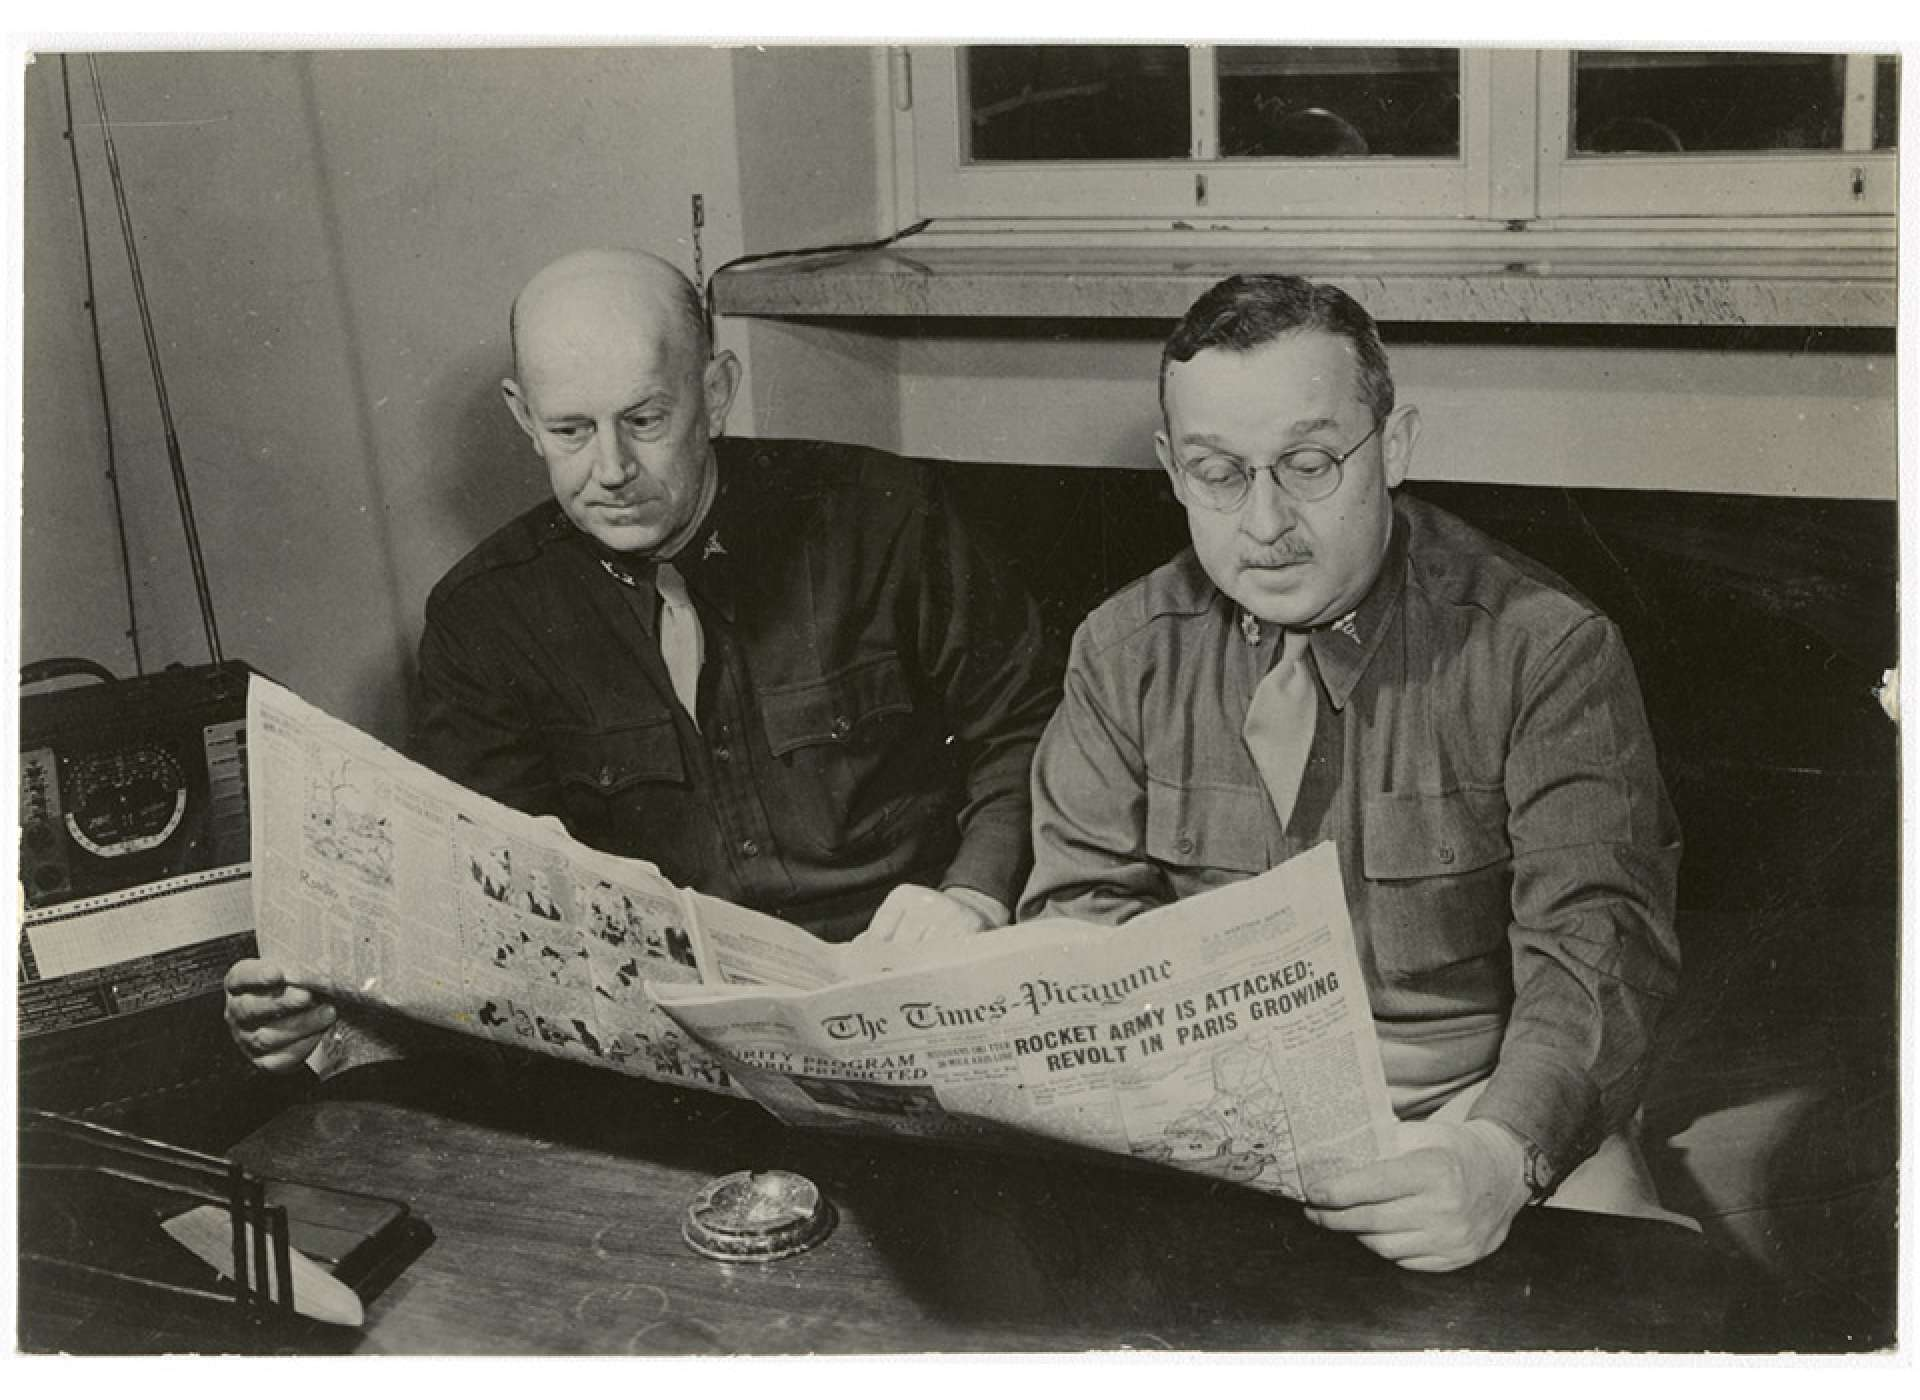 Home was never too far away. Colonel Royals and Major George Grant (L-R), the Commanding and Executive Officers of the 24th General Hospital, read copies of the New Orleans newspaper Times-Picayune in Florence. The National WWII Museum.